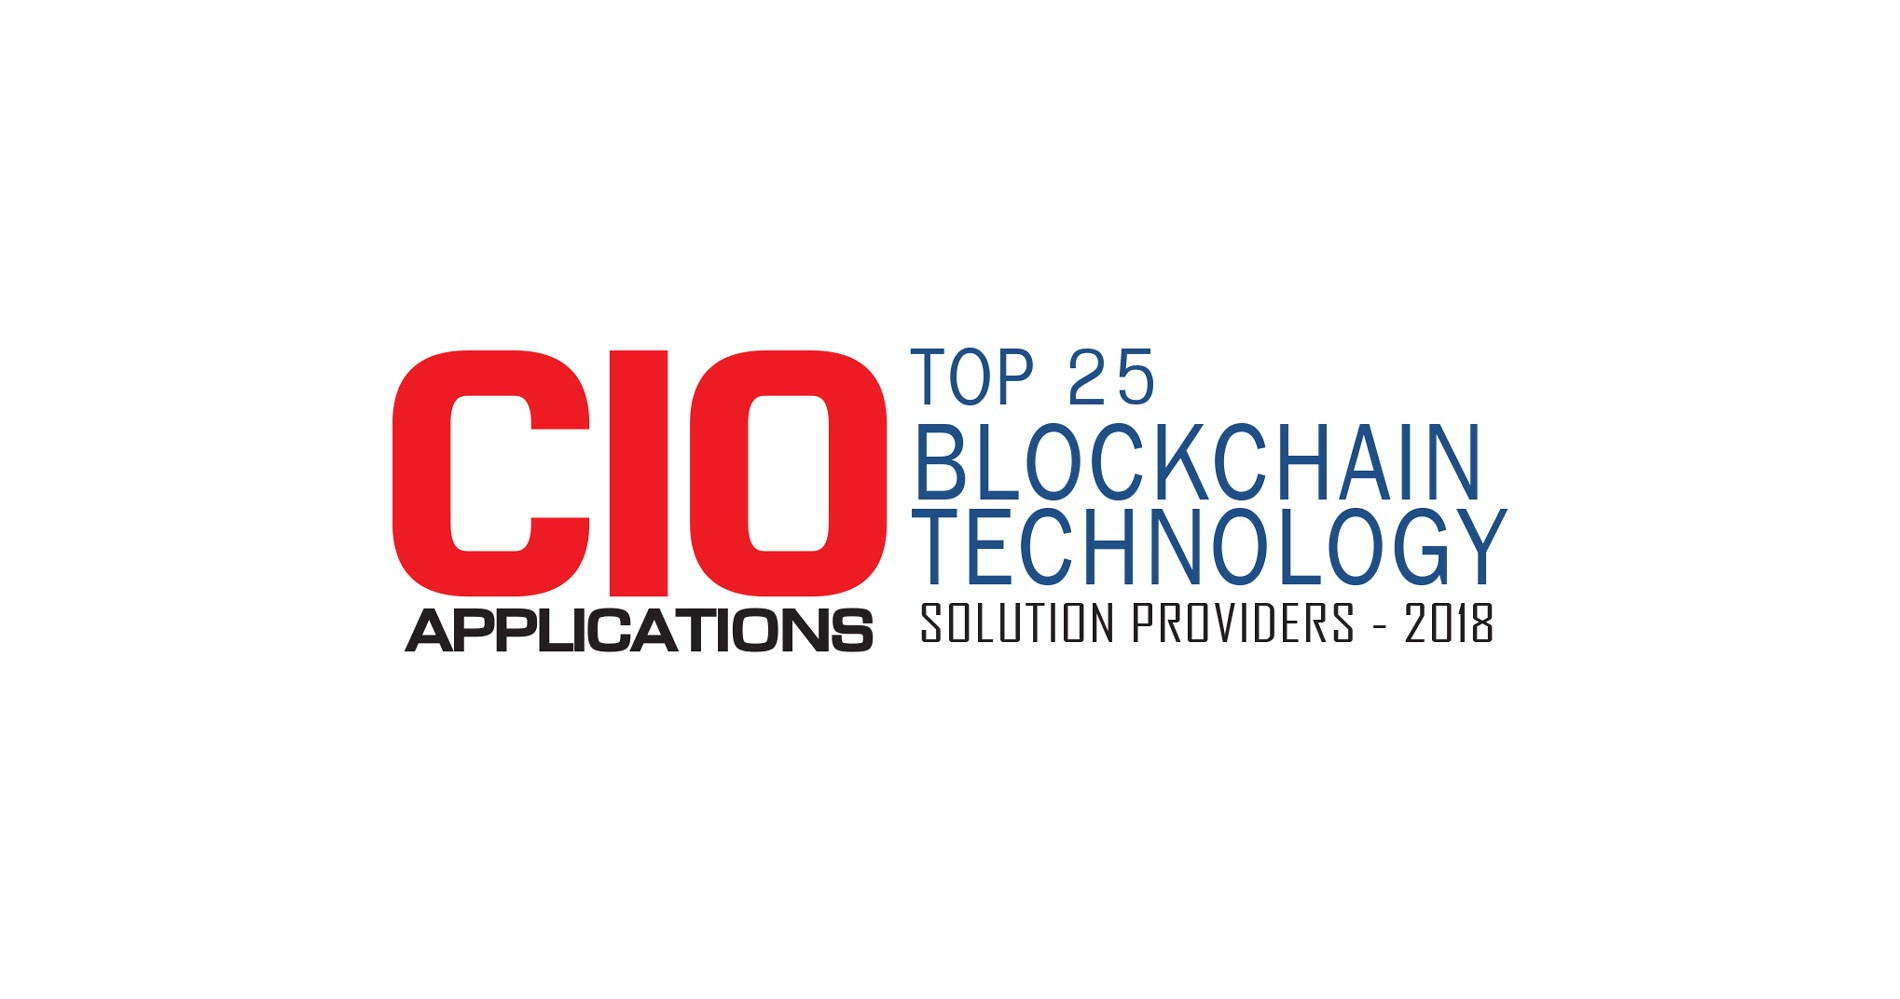 Very Named as Top Blockchain Technology Solutions Provider